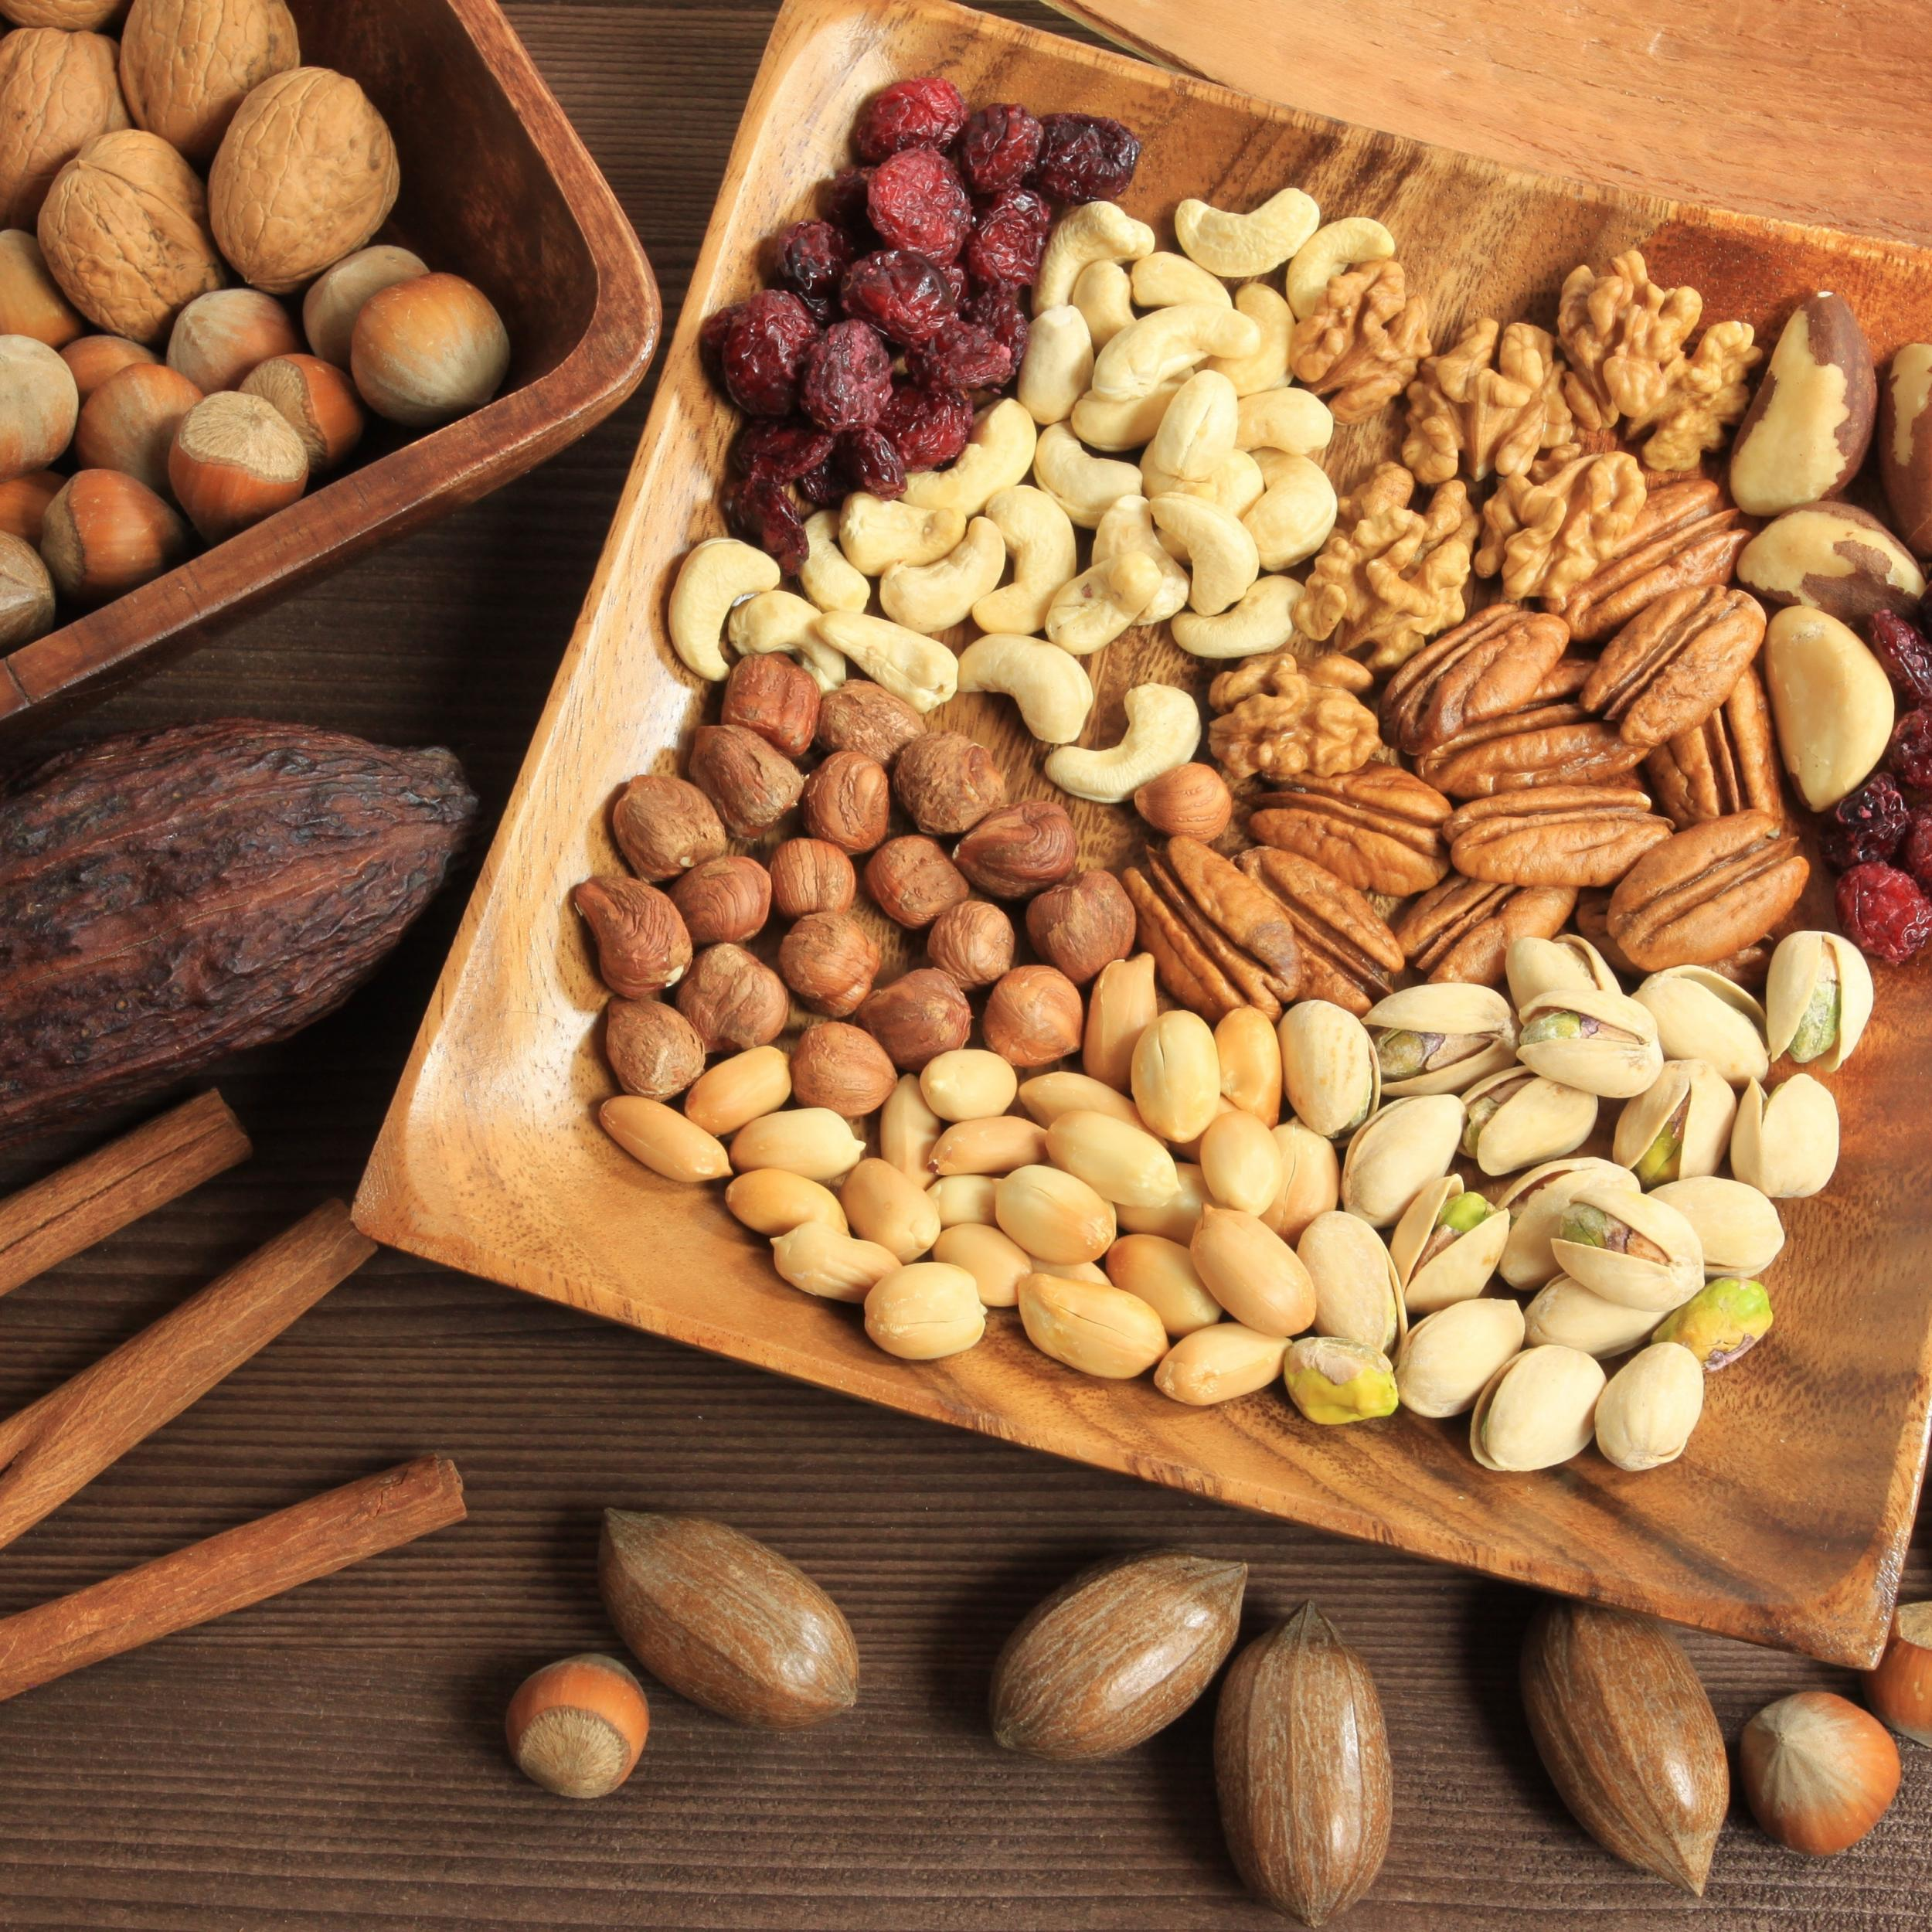 Benefits Of Nuts: Eating 10 Grams Of Nuts And Peanuts A Day